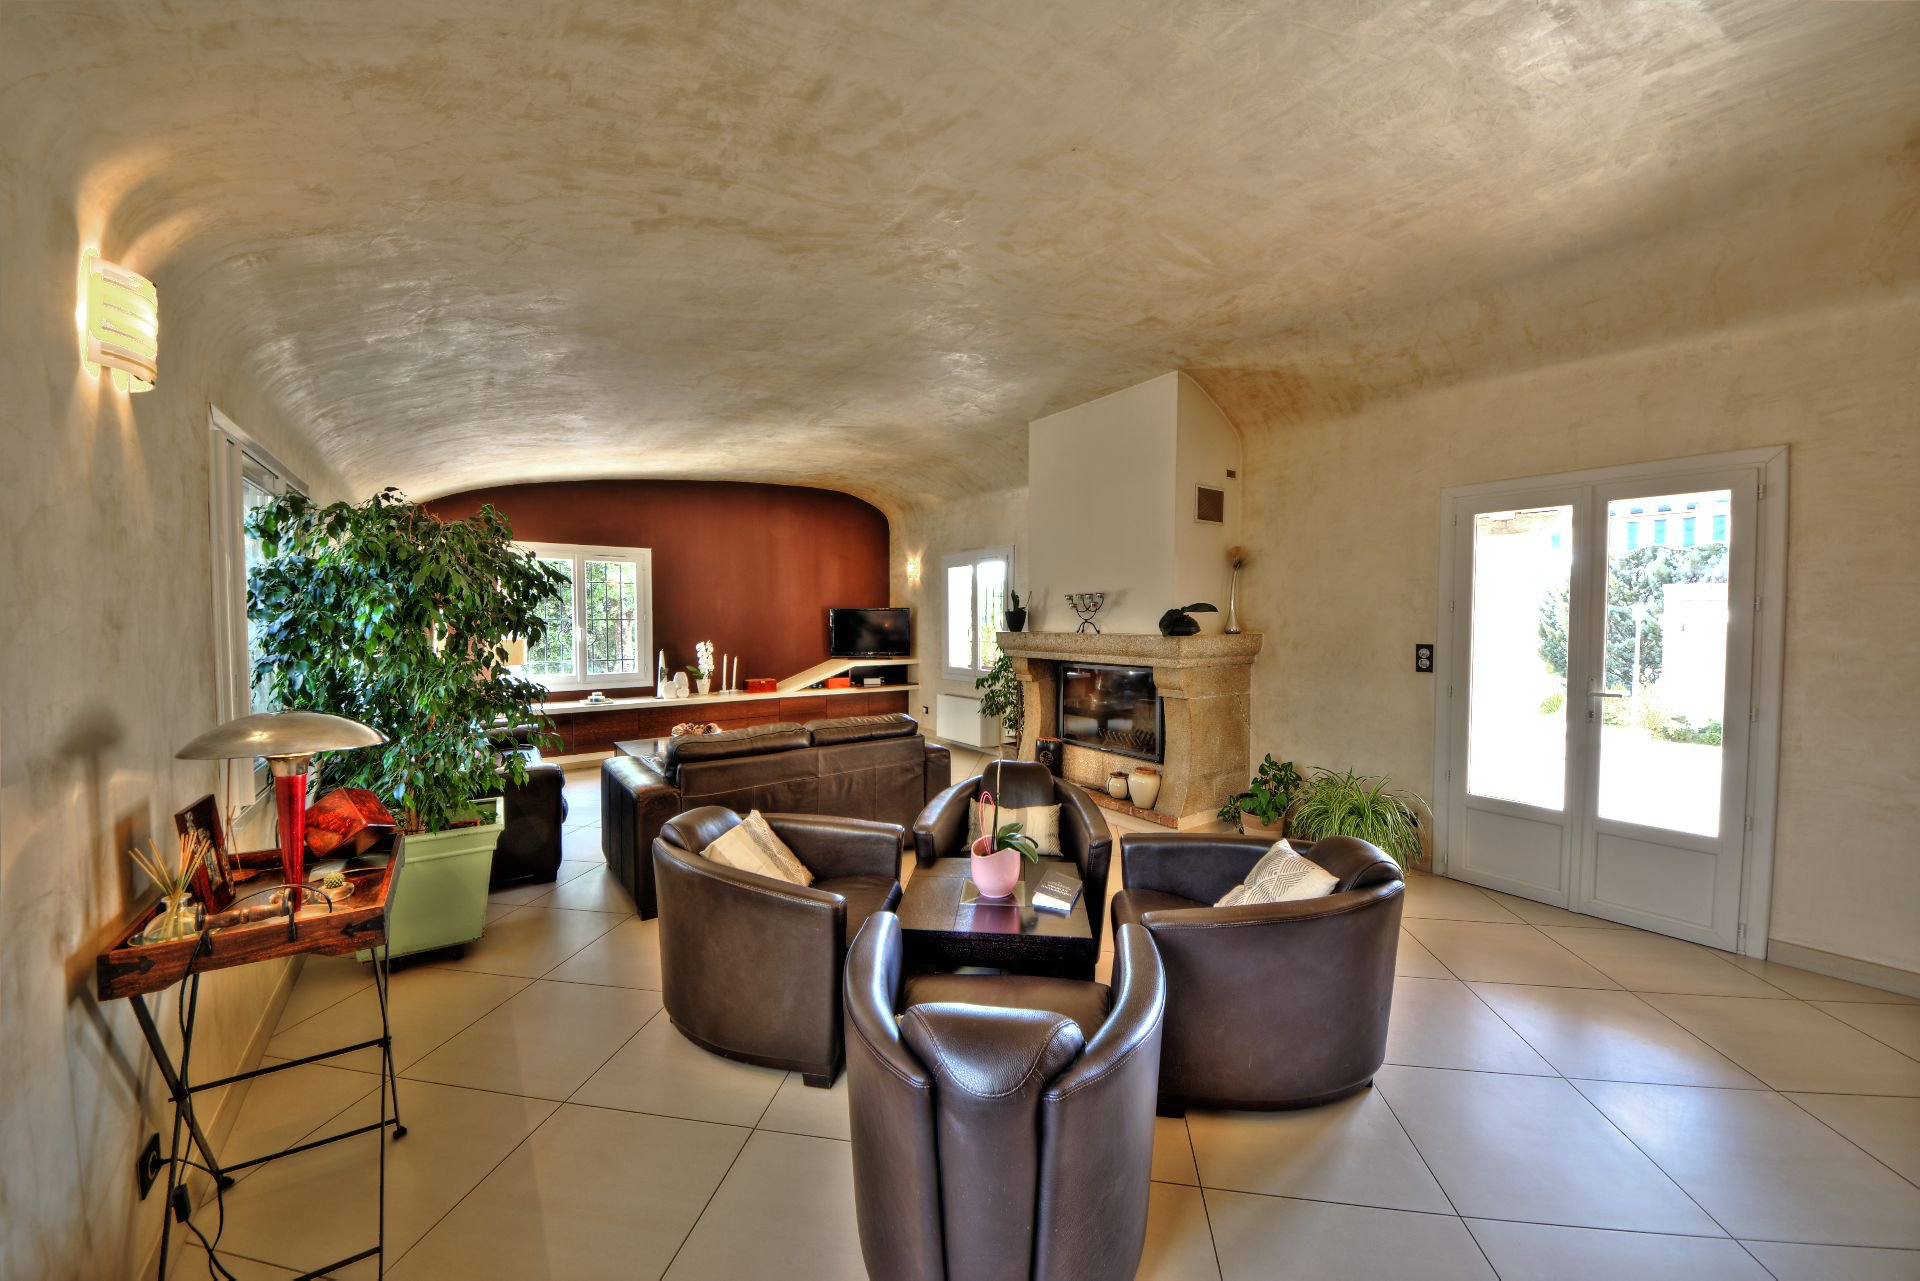 Living House 200 m², 4 bedrooms, outbuilding on 8000 m² agricultural area, Ampus, Var, Provence, Paca